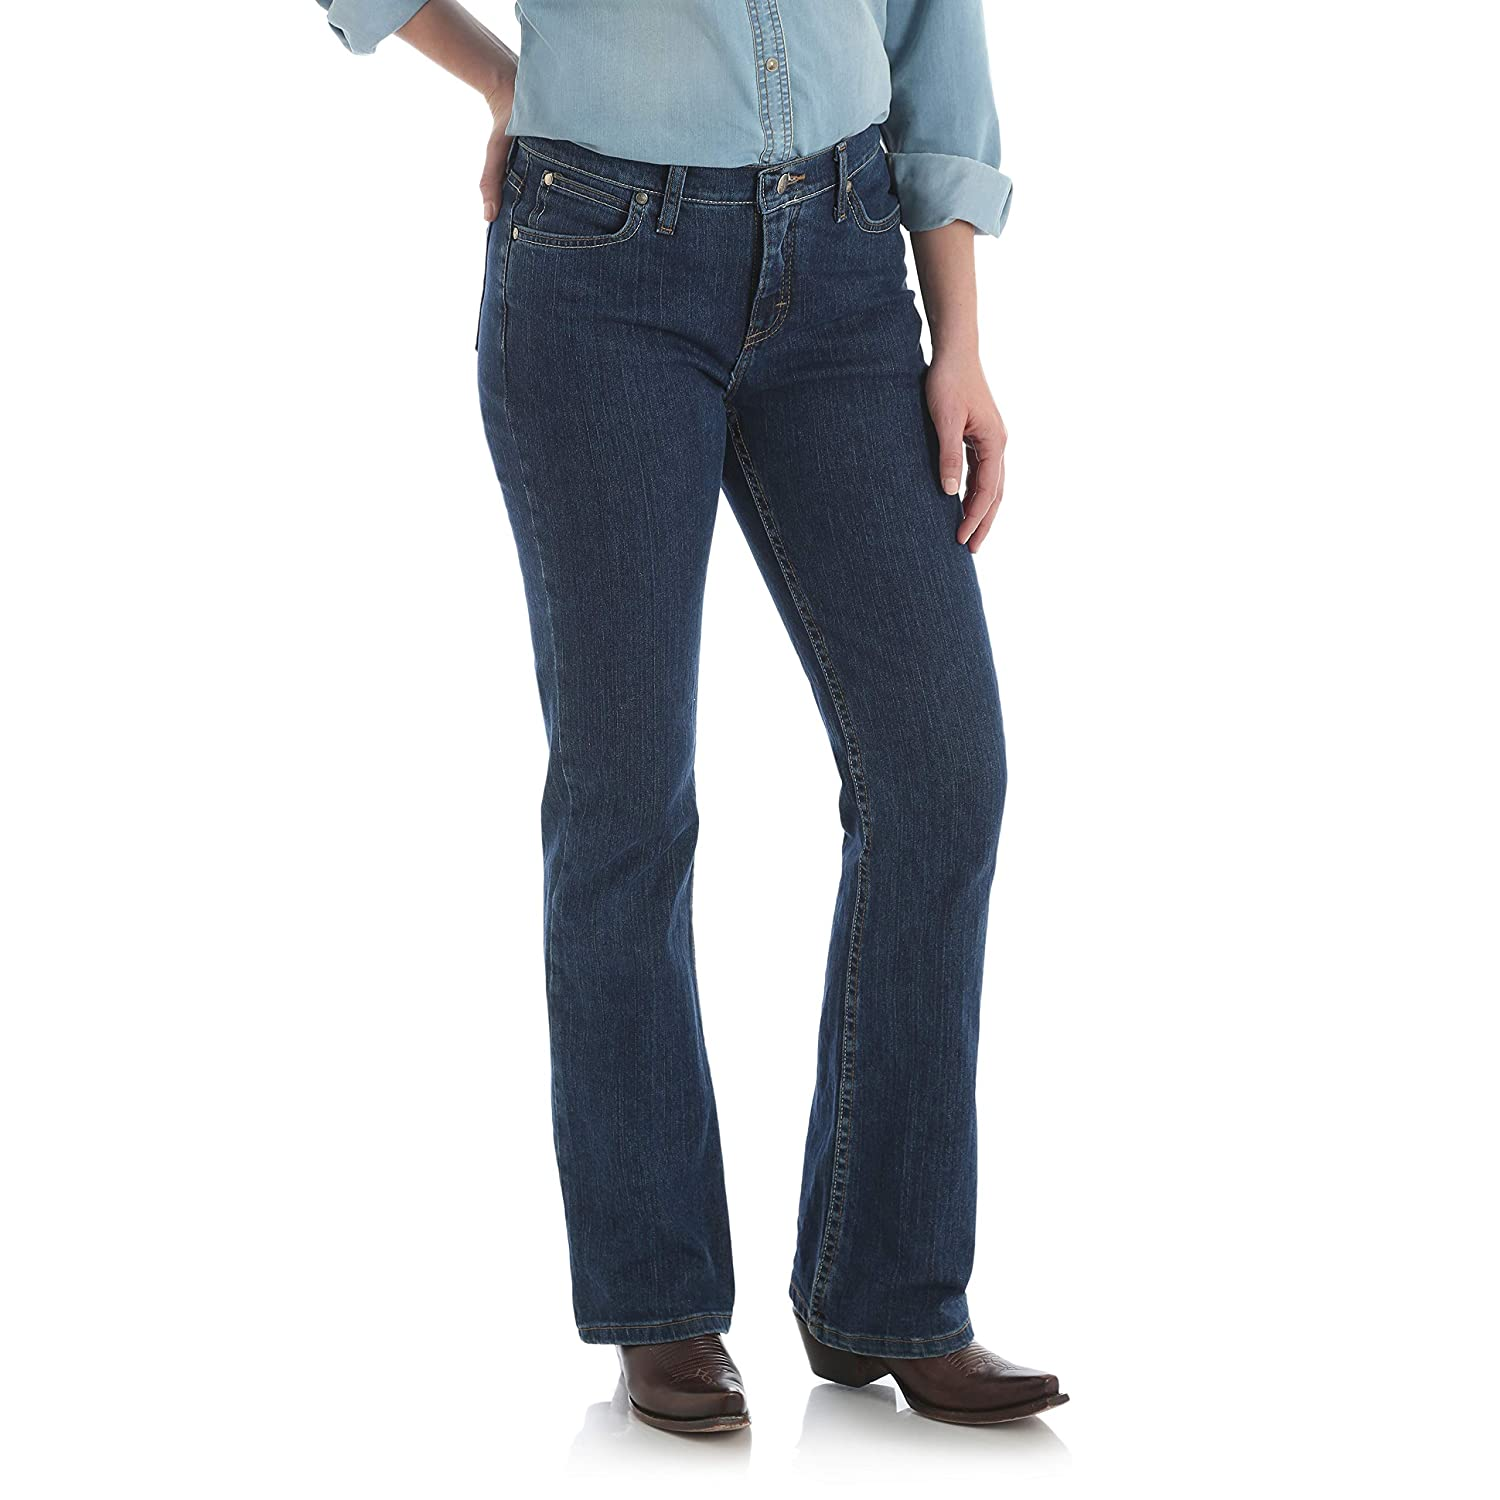 Wrangler Womens As Real as Wrangler Classic-Fit Bootcut Jean